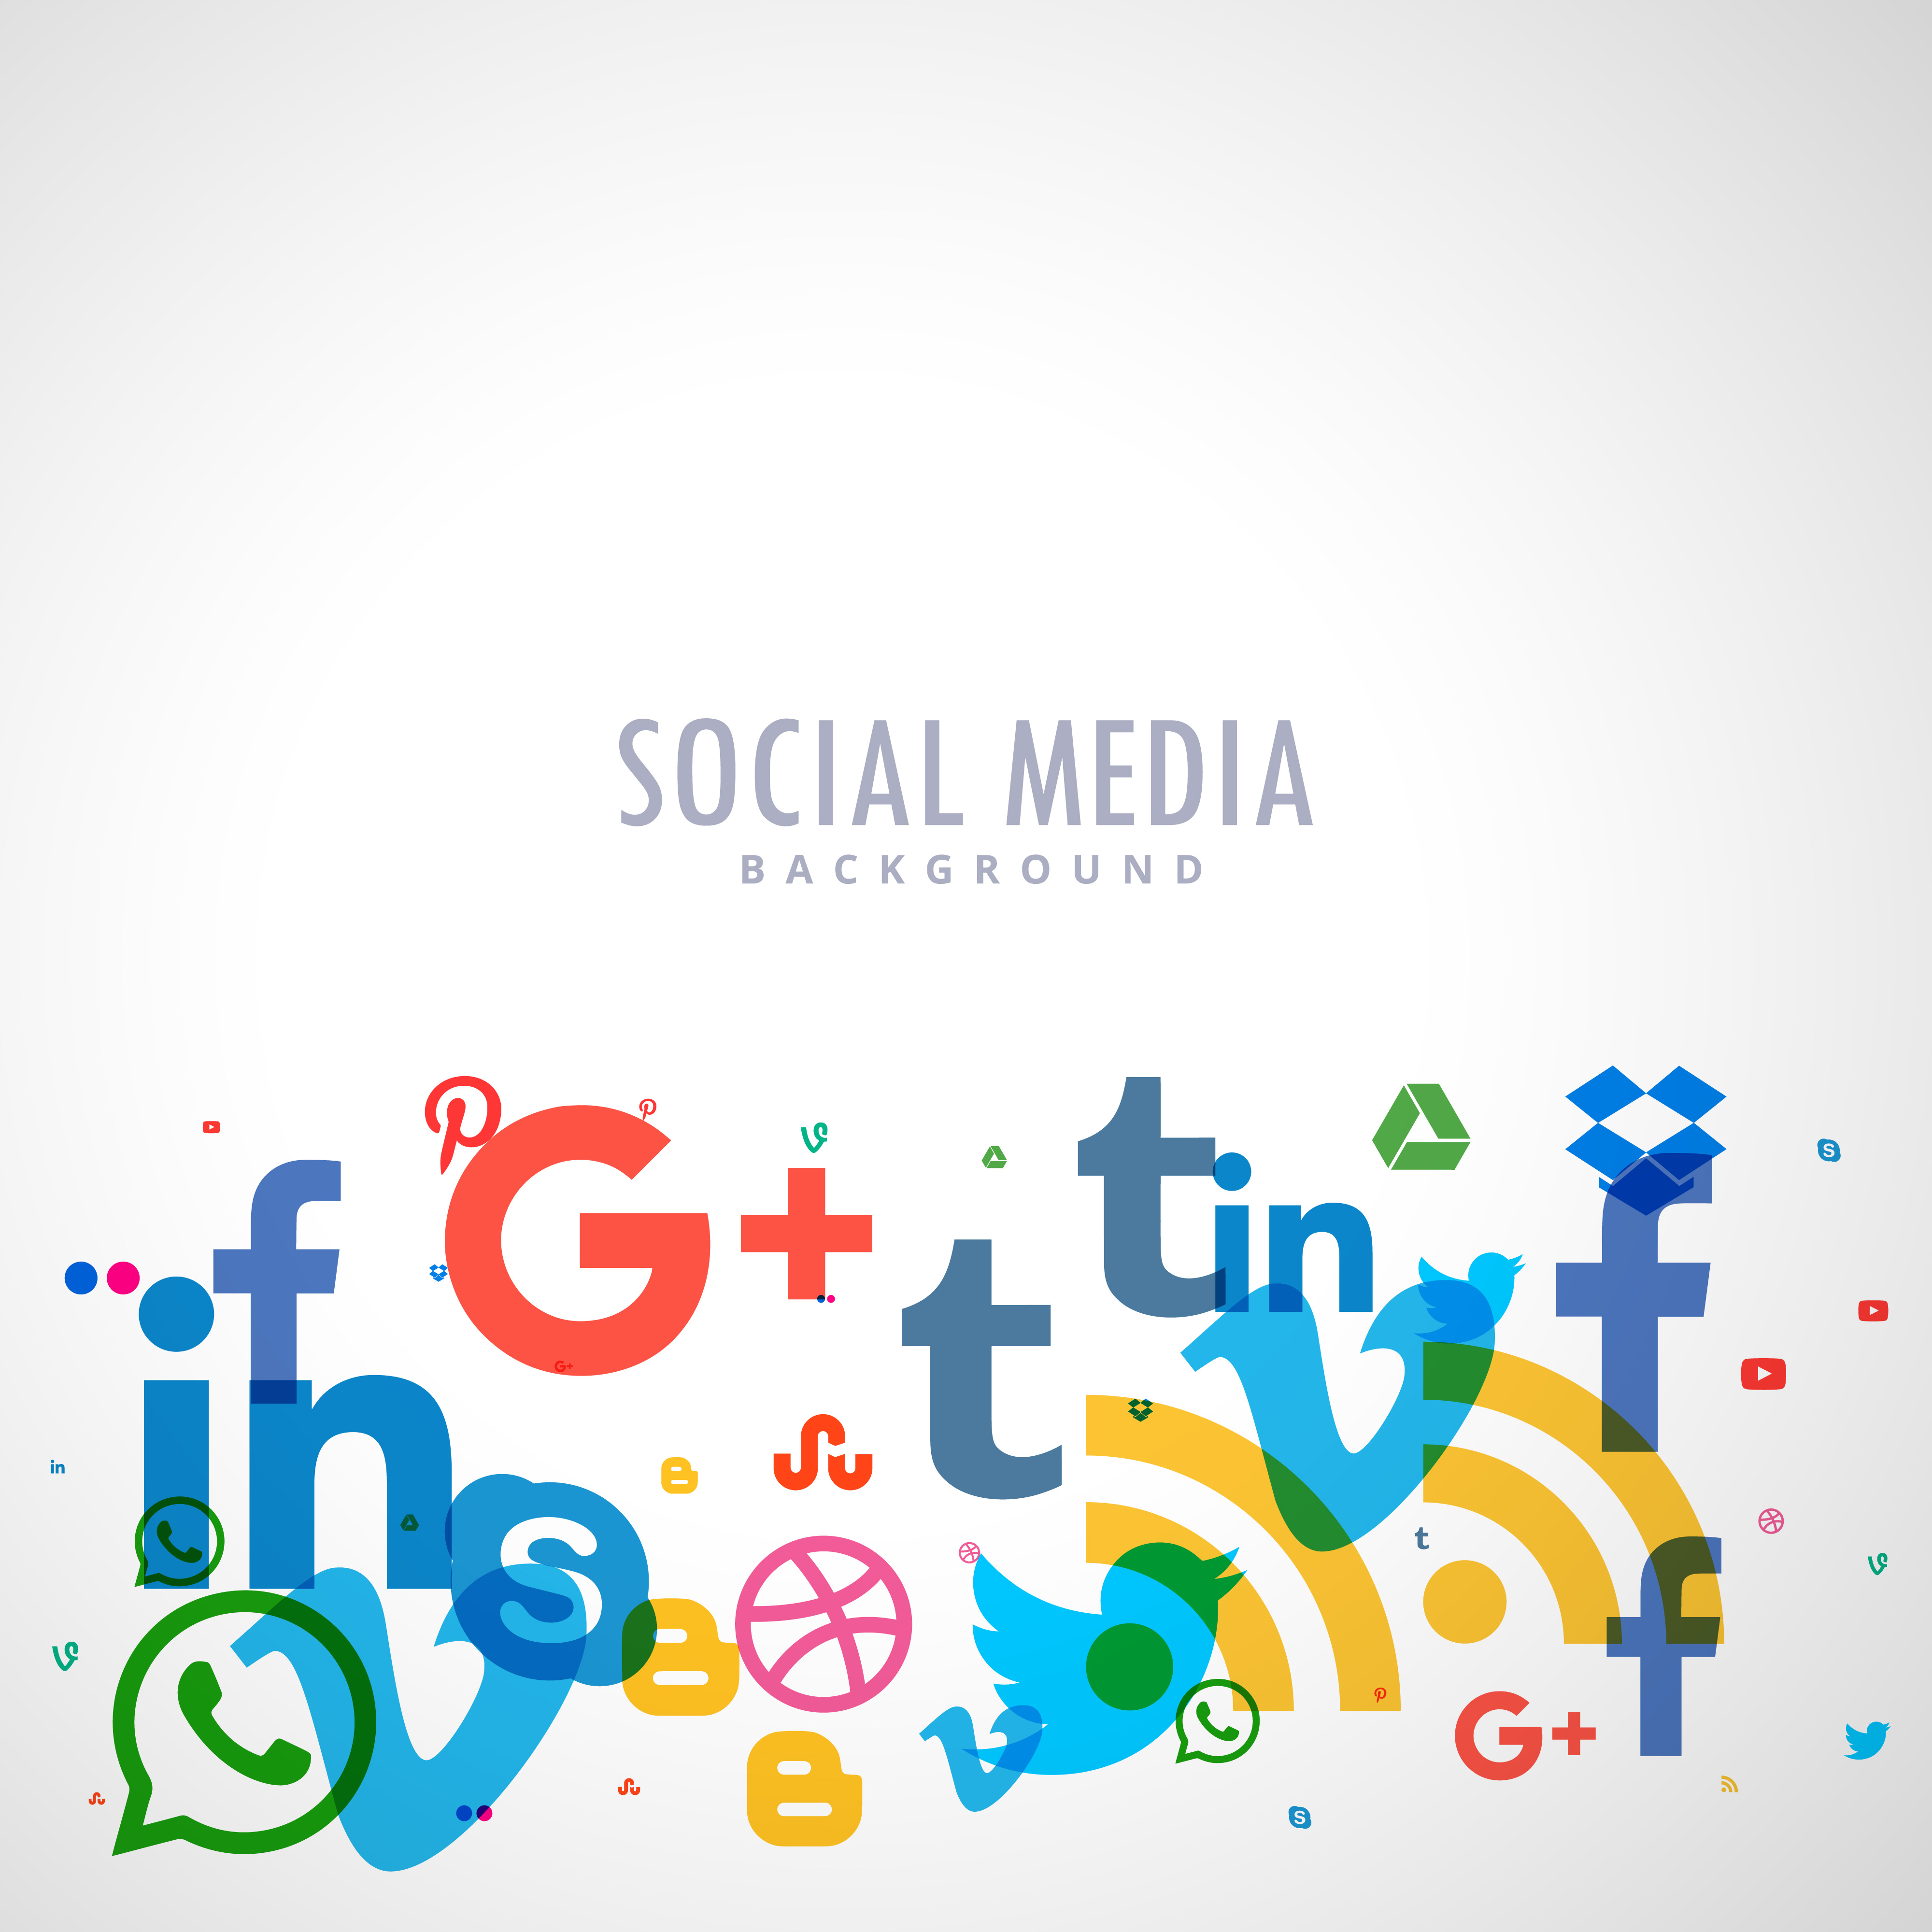 social-networks-icons-background-vector.jpg